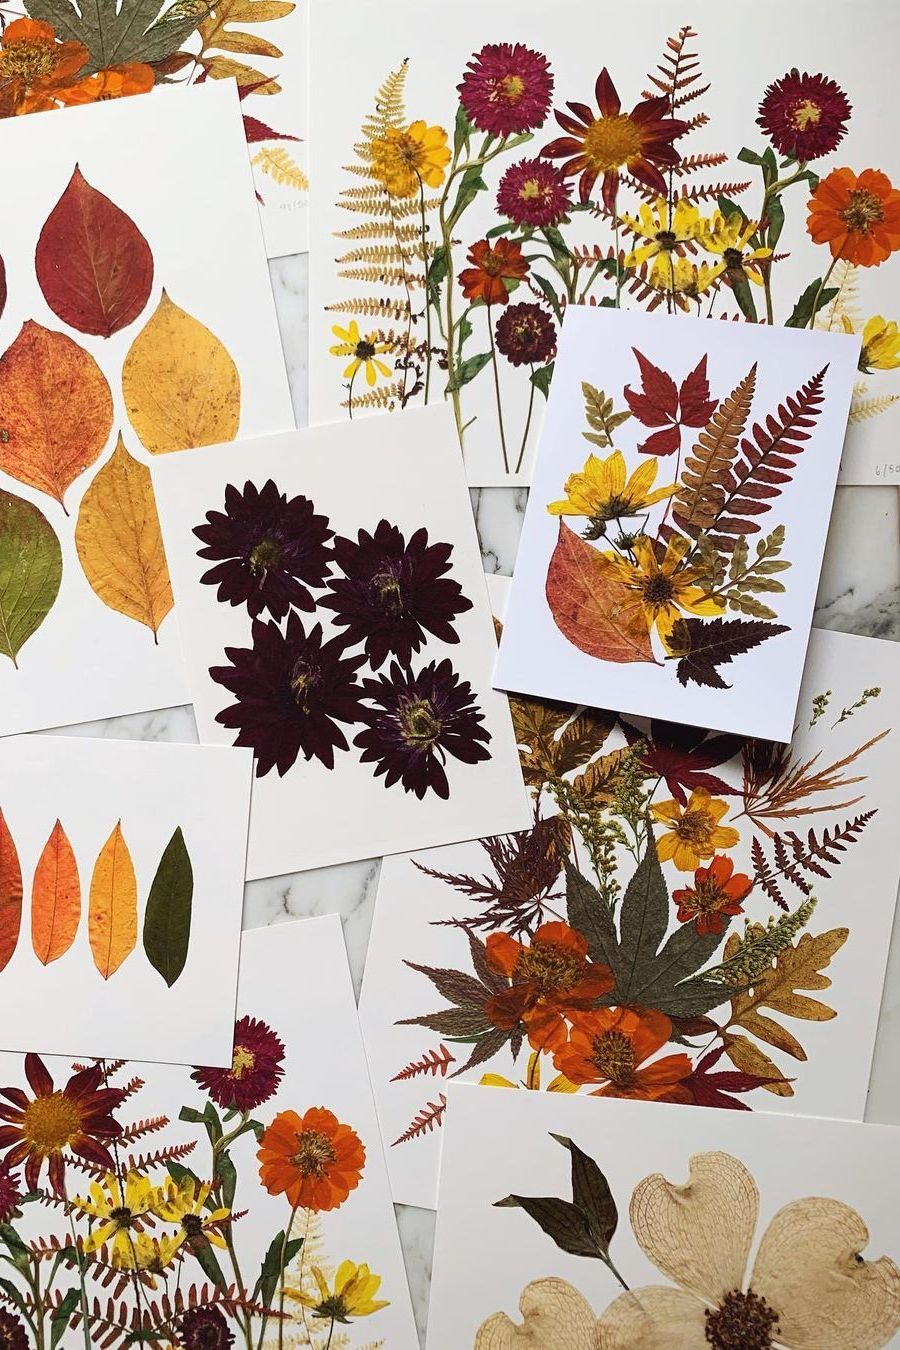 This original artwork features a collection of autumn flowers and plants arranged into a growing